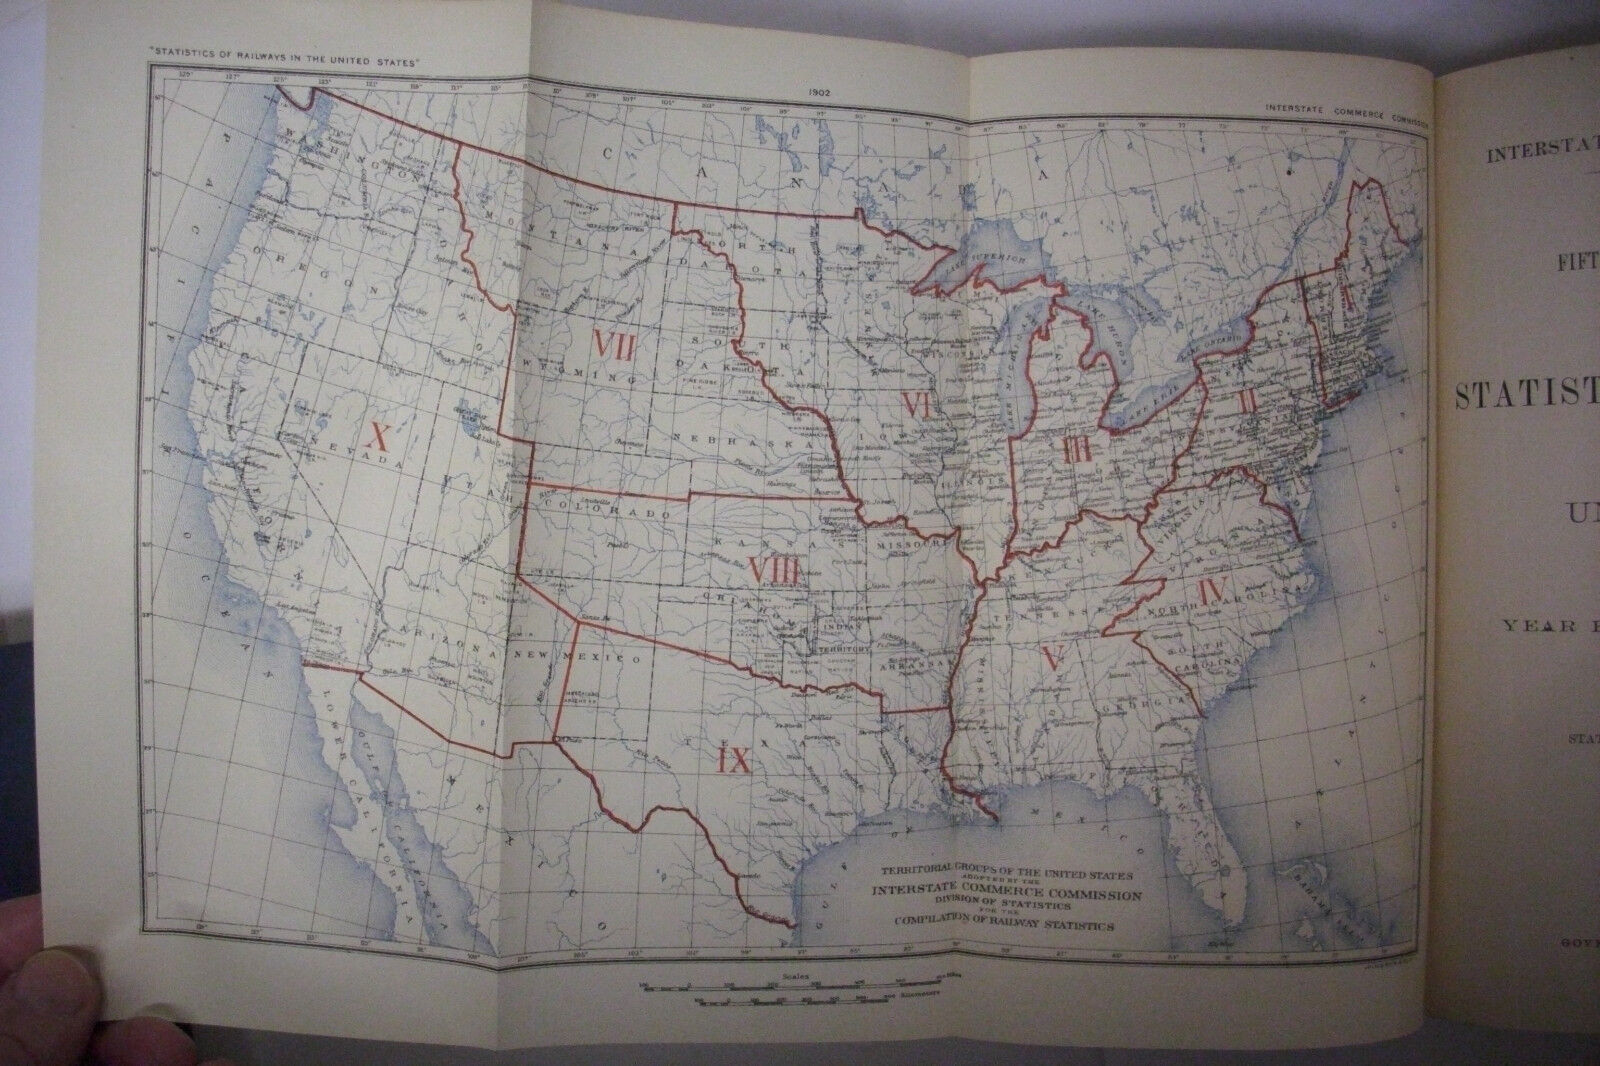 1902 ANNUAL REPORT ON THE RAILWAYS IN THE US RailroadTrainsw